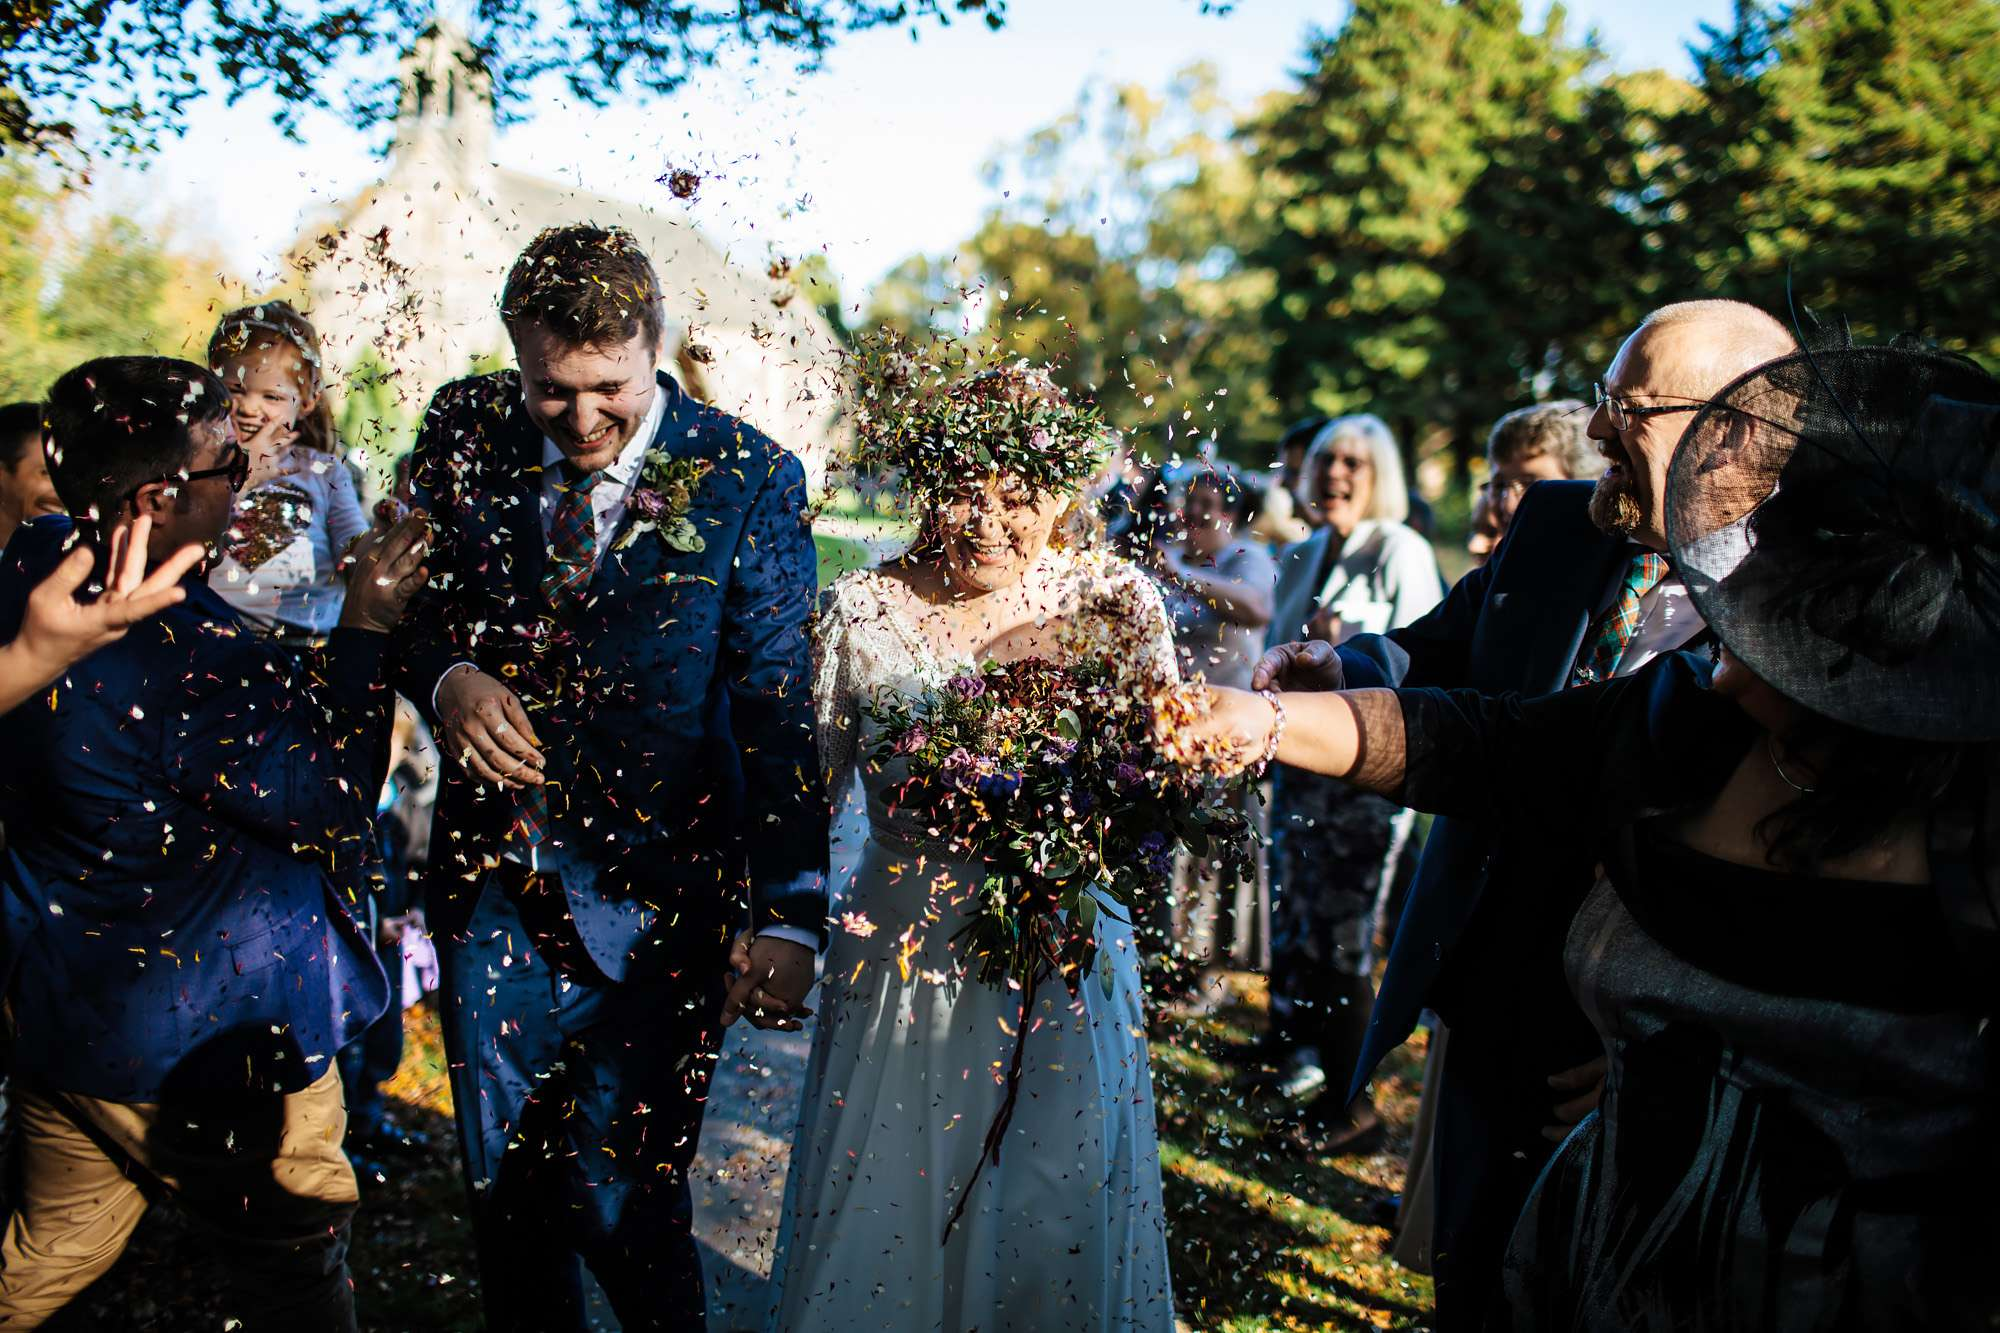 Wedding guests throwing confetti over the bride and groom